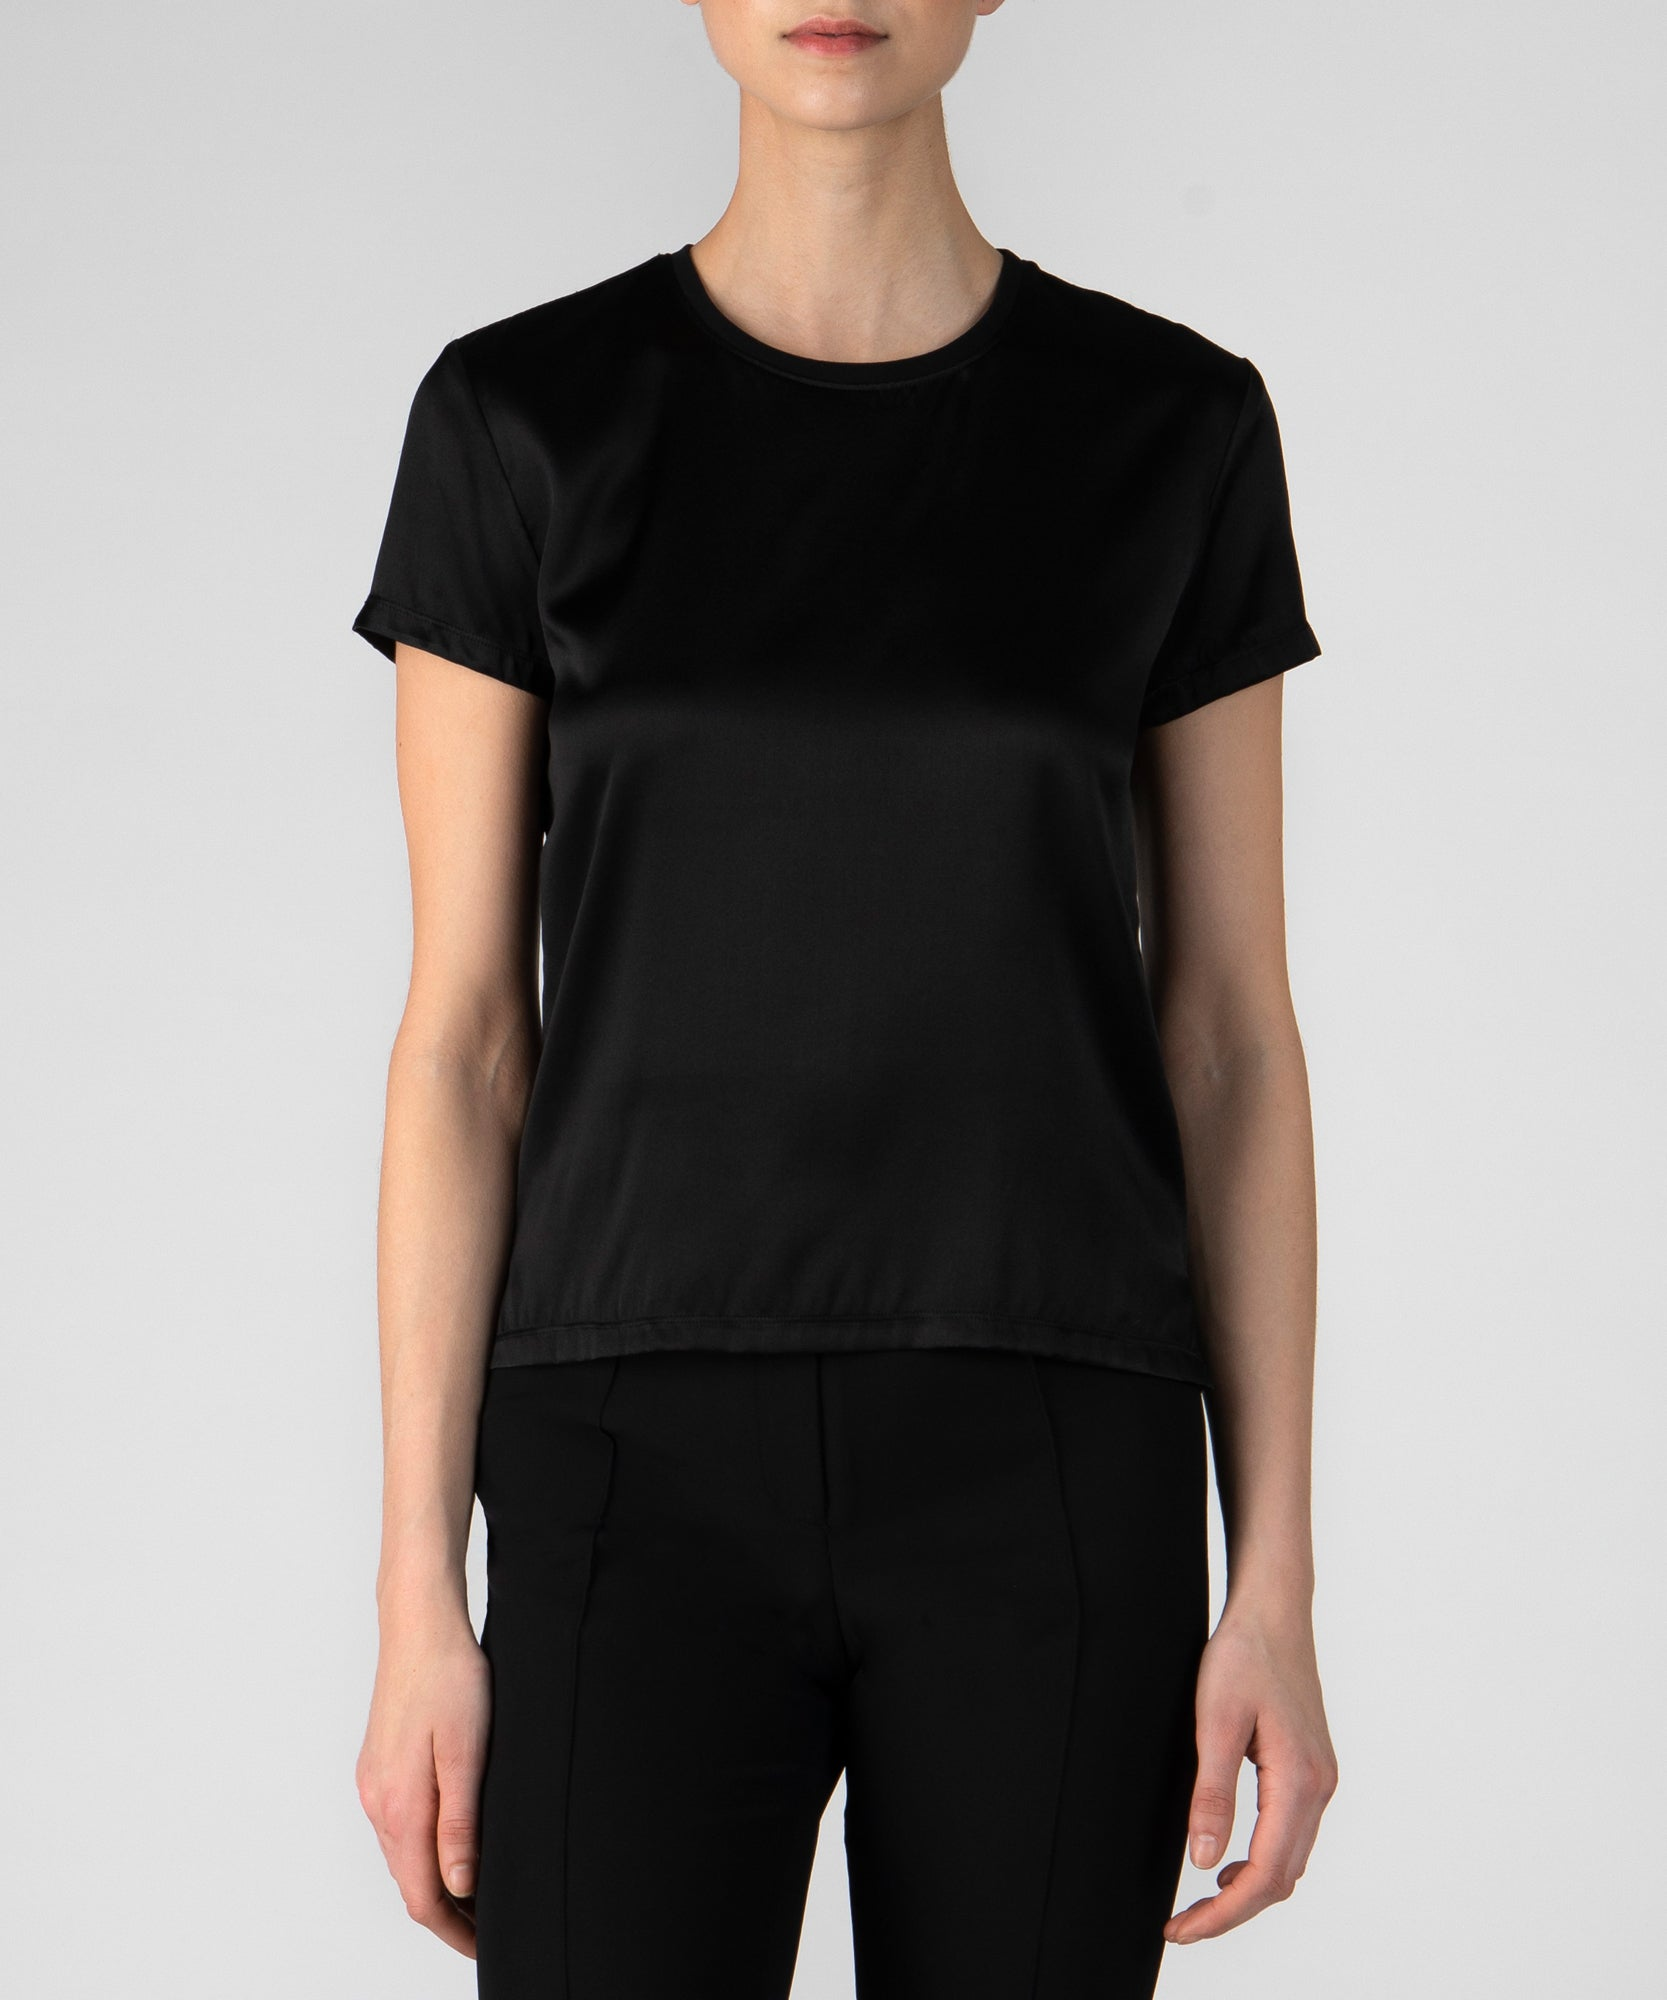 Black Silk Blend Crew Neck Tee - Women's Luxe Top by ATM Anthony Thomas Melillo